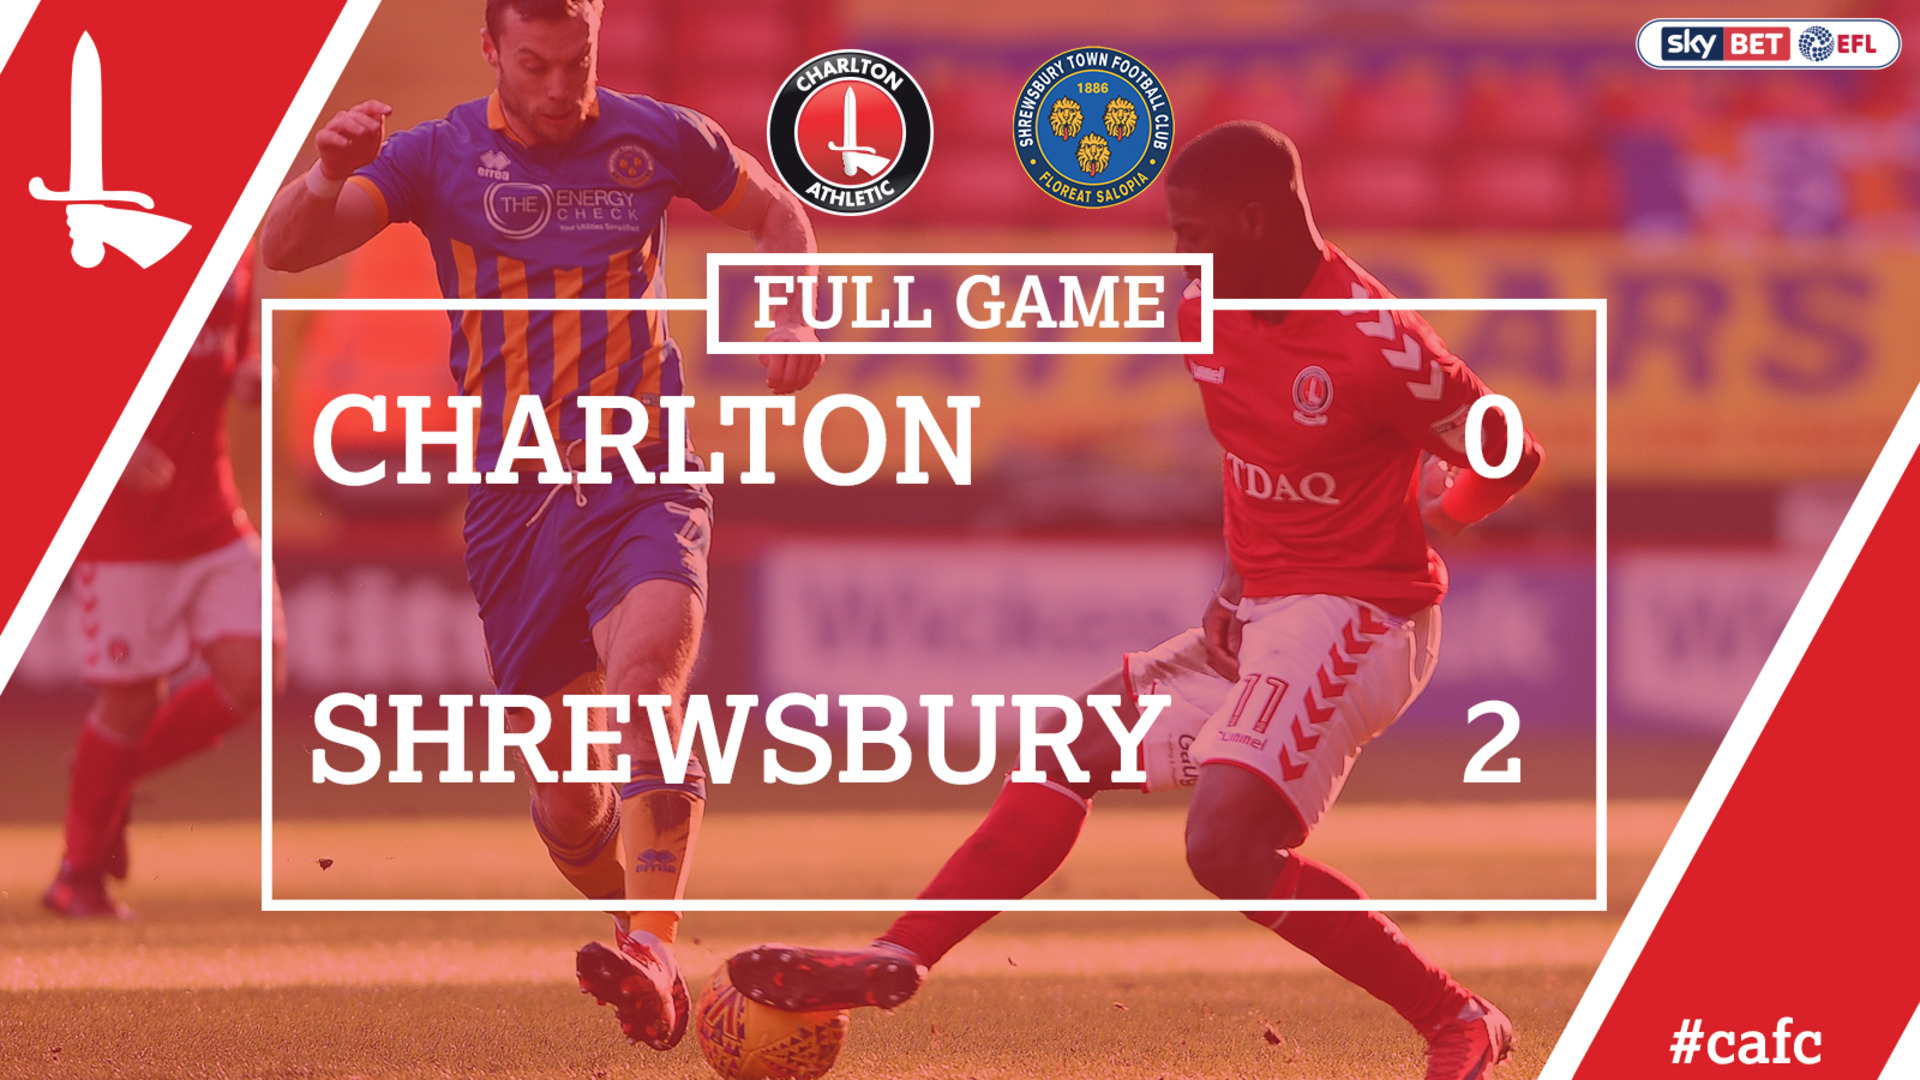 FULL GAME | Charlton 0 Shrewsbury 2 (Feb 2018)